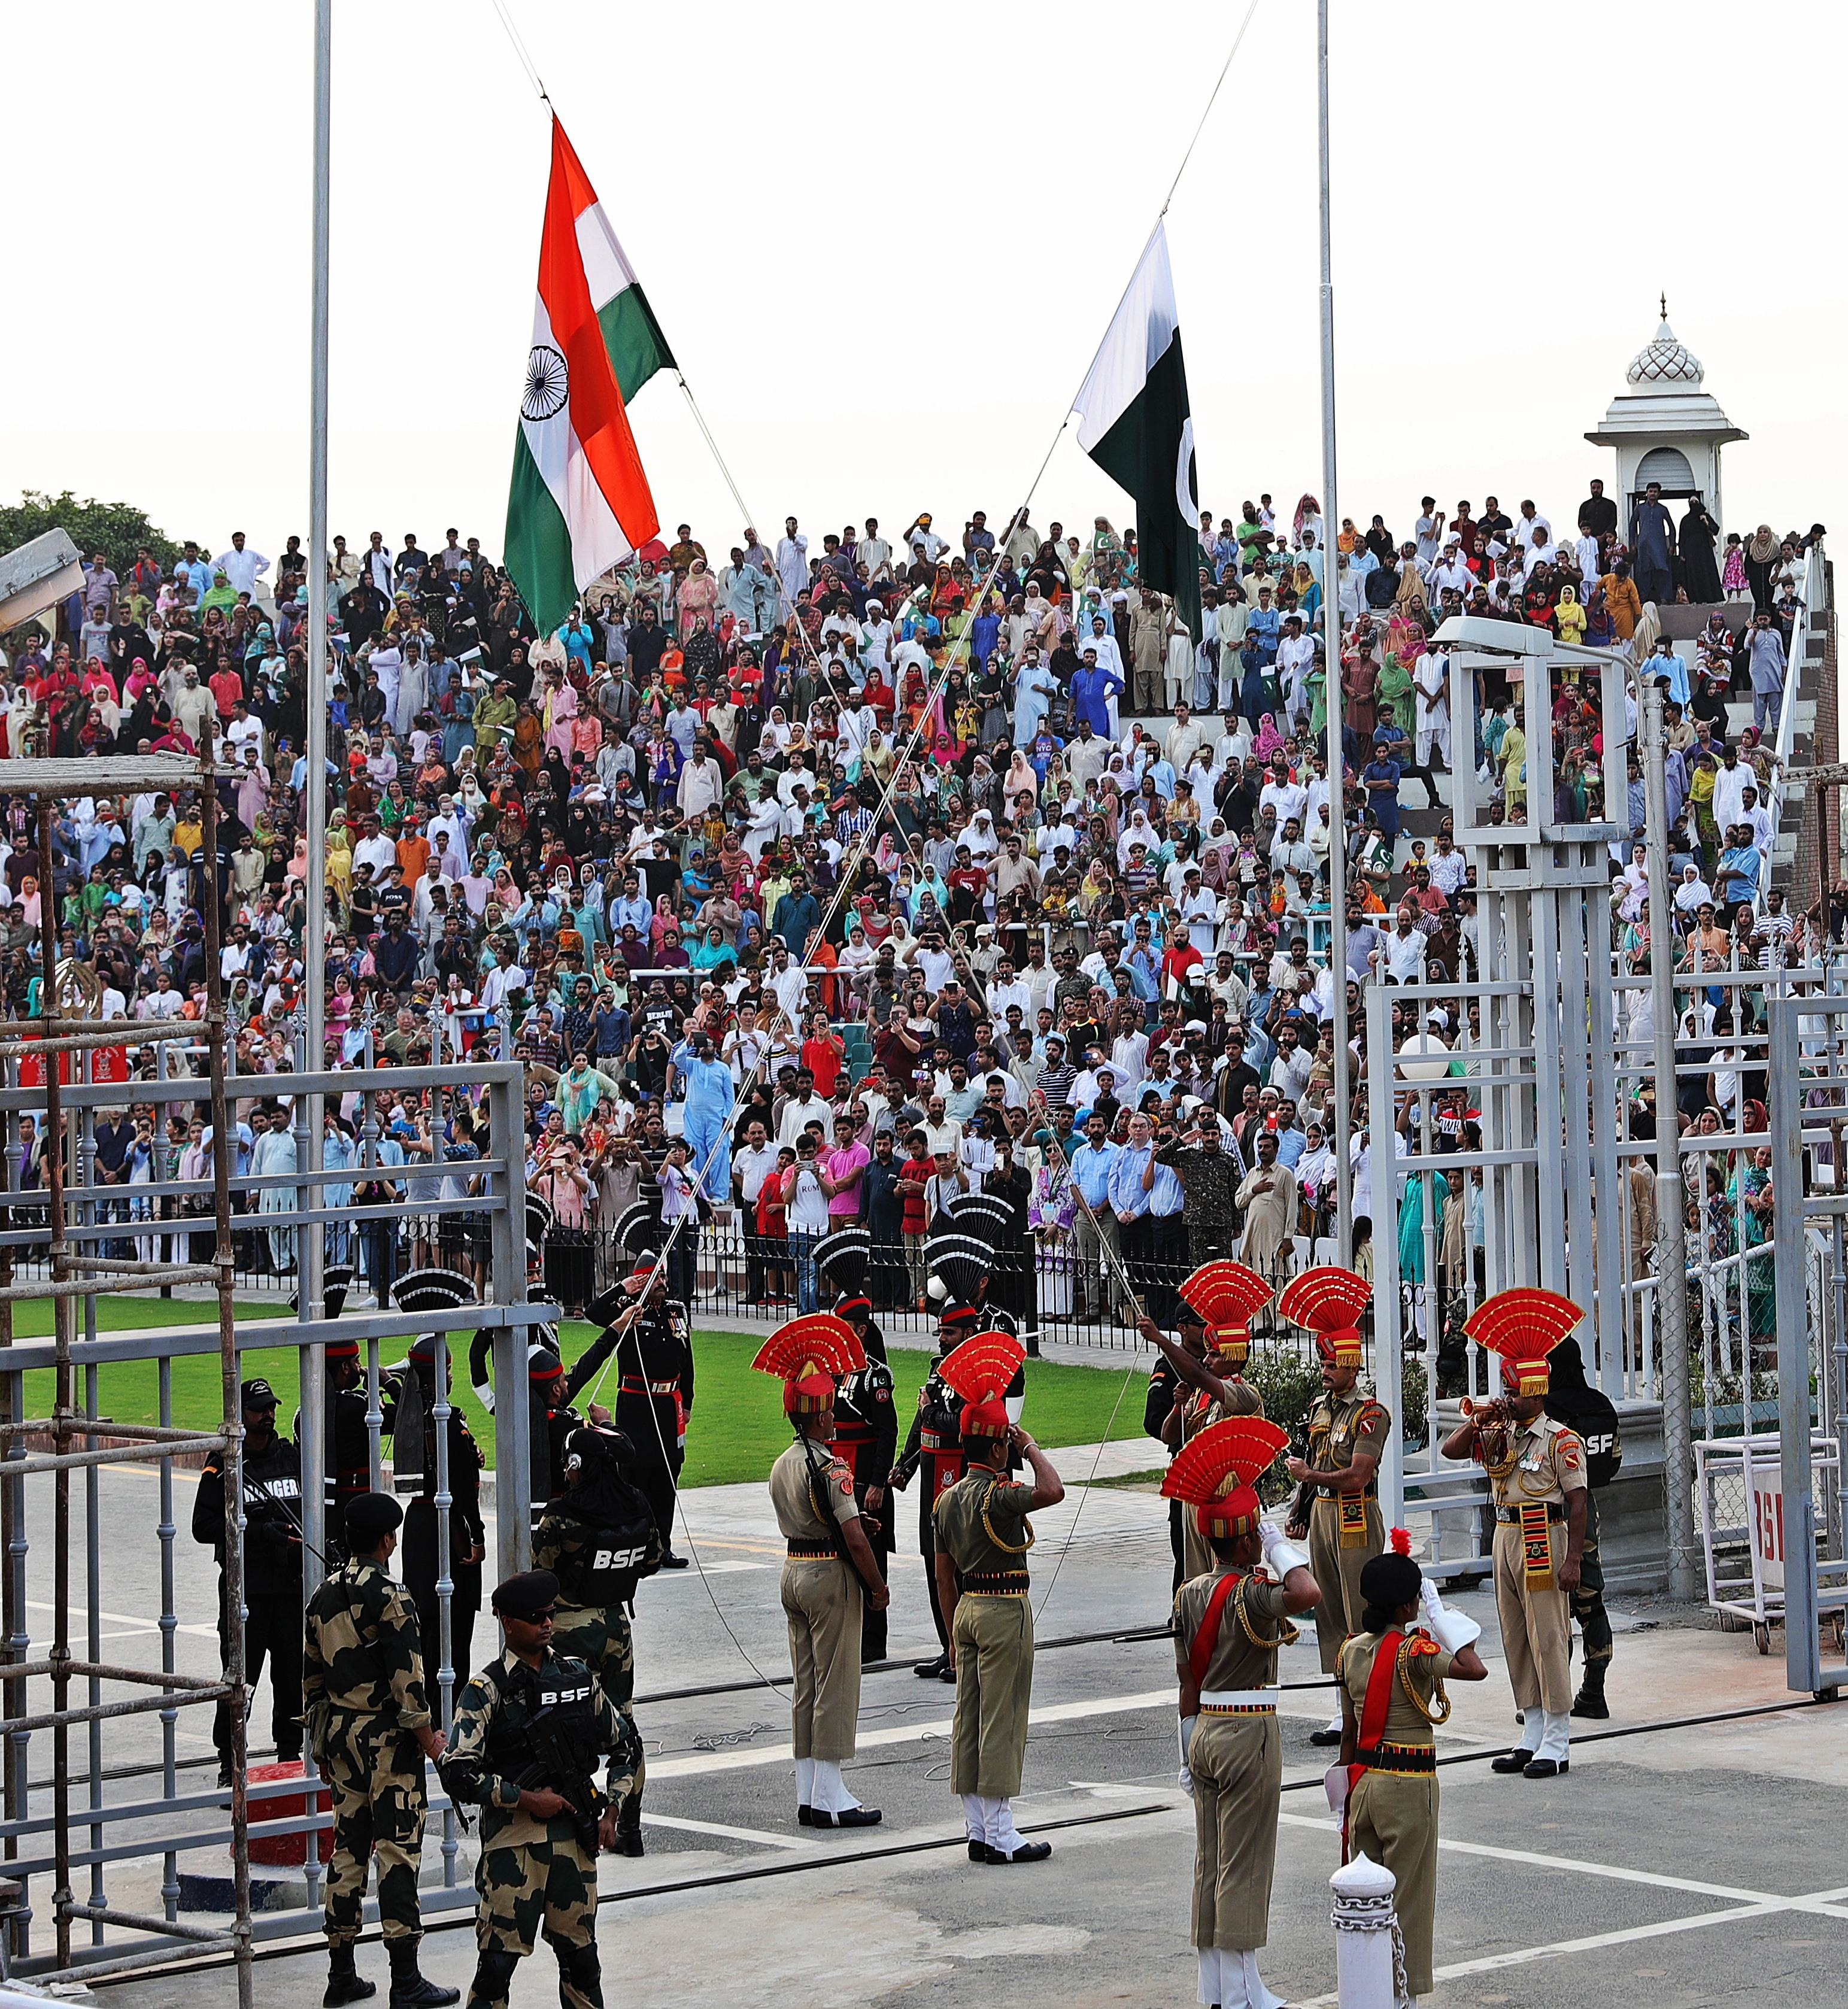 Lowering the flags at the Wagah Border Ceremony